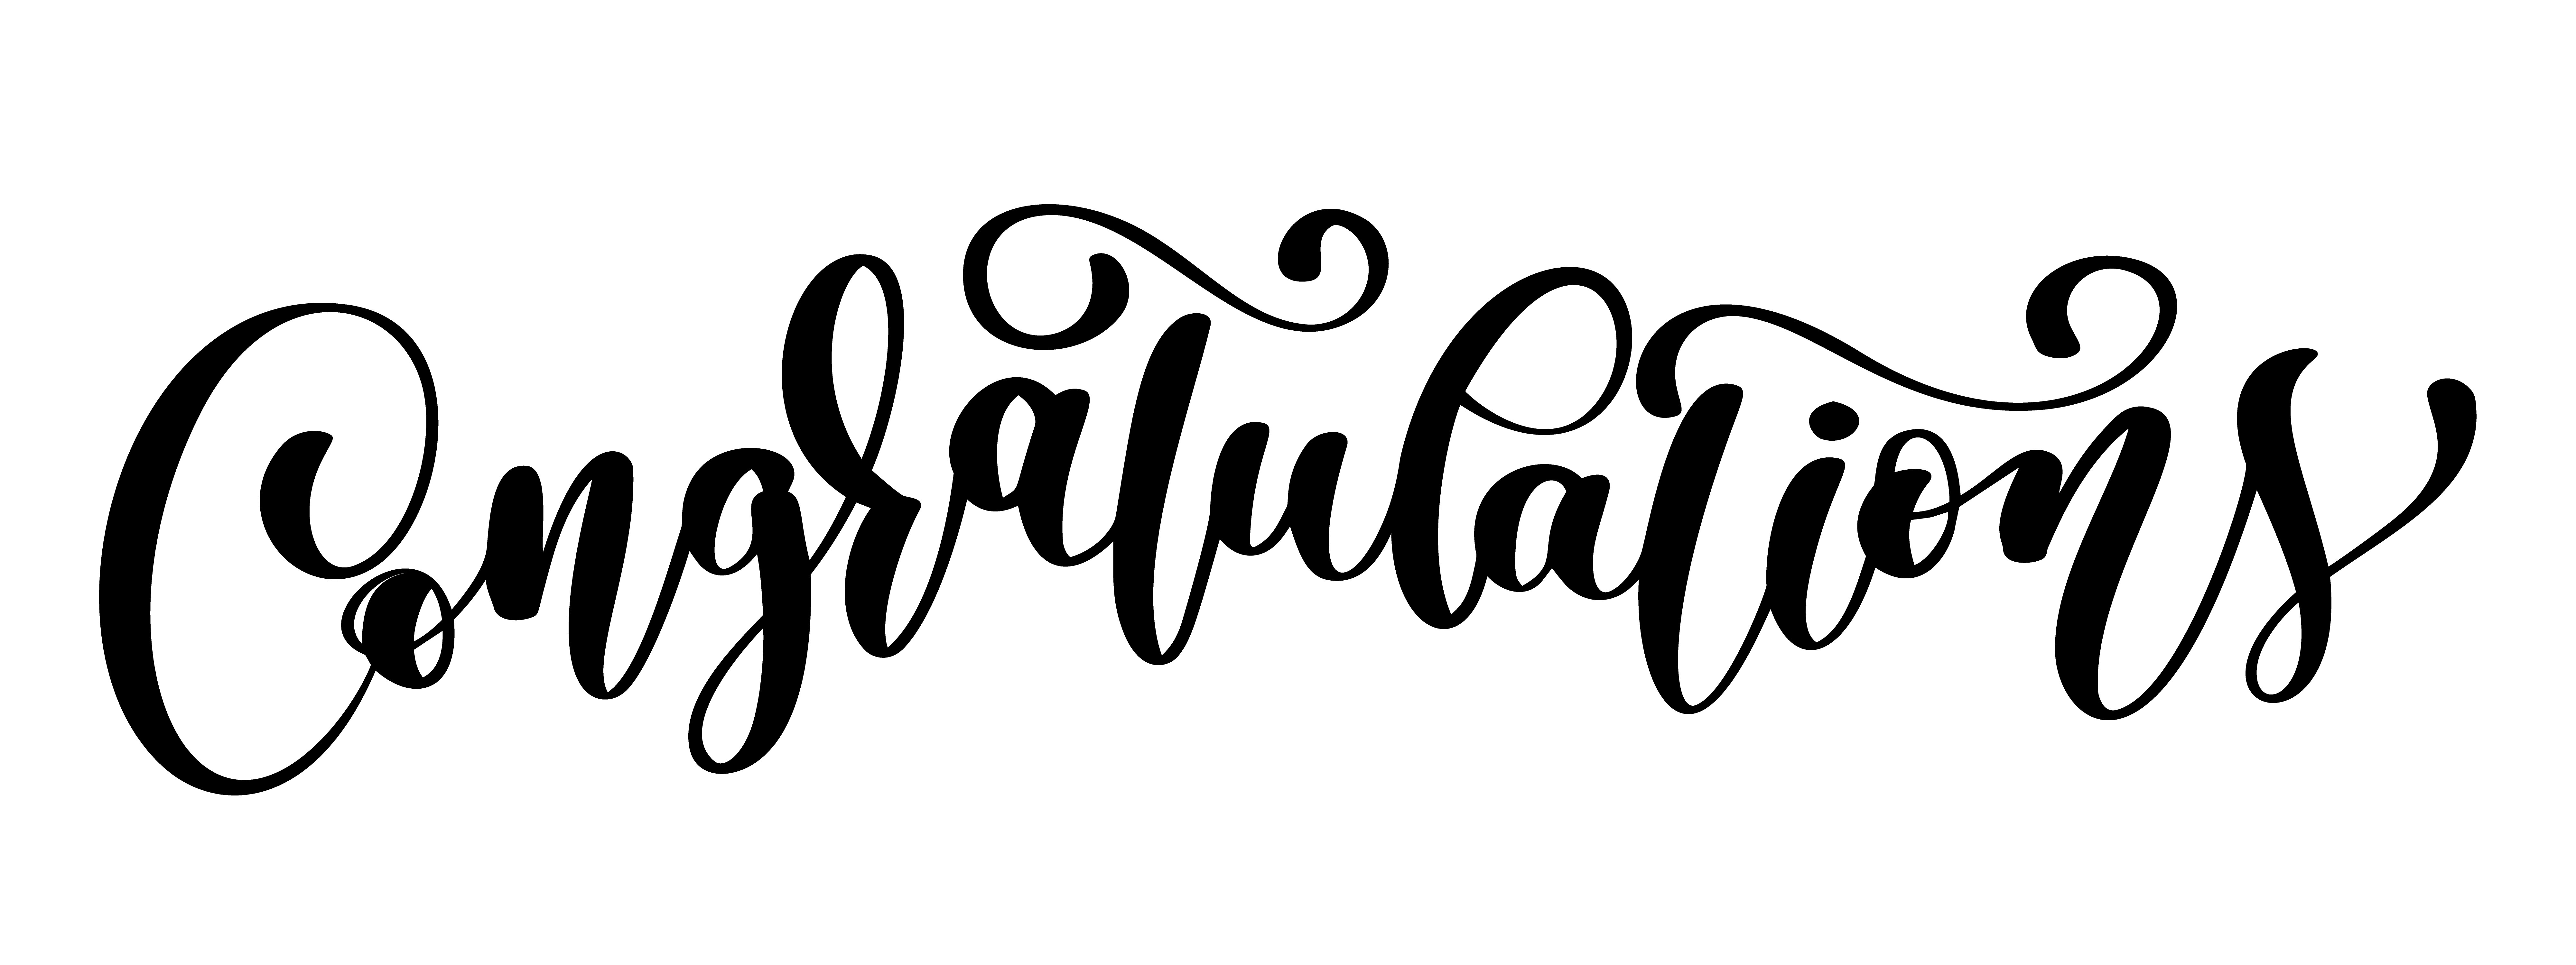 Congratulations Calligraphy Lettering Text Card With